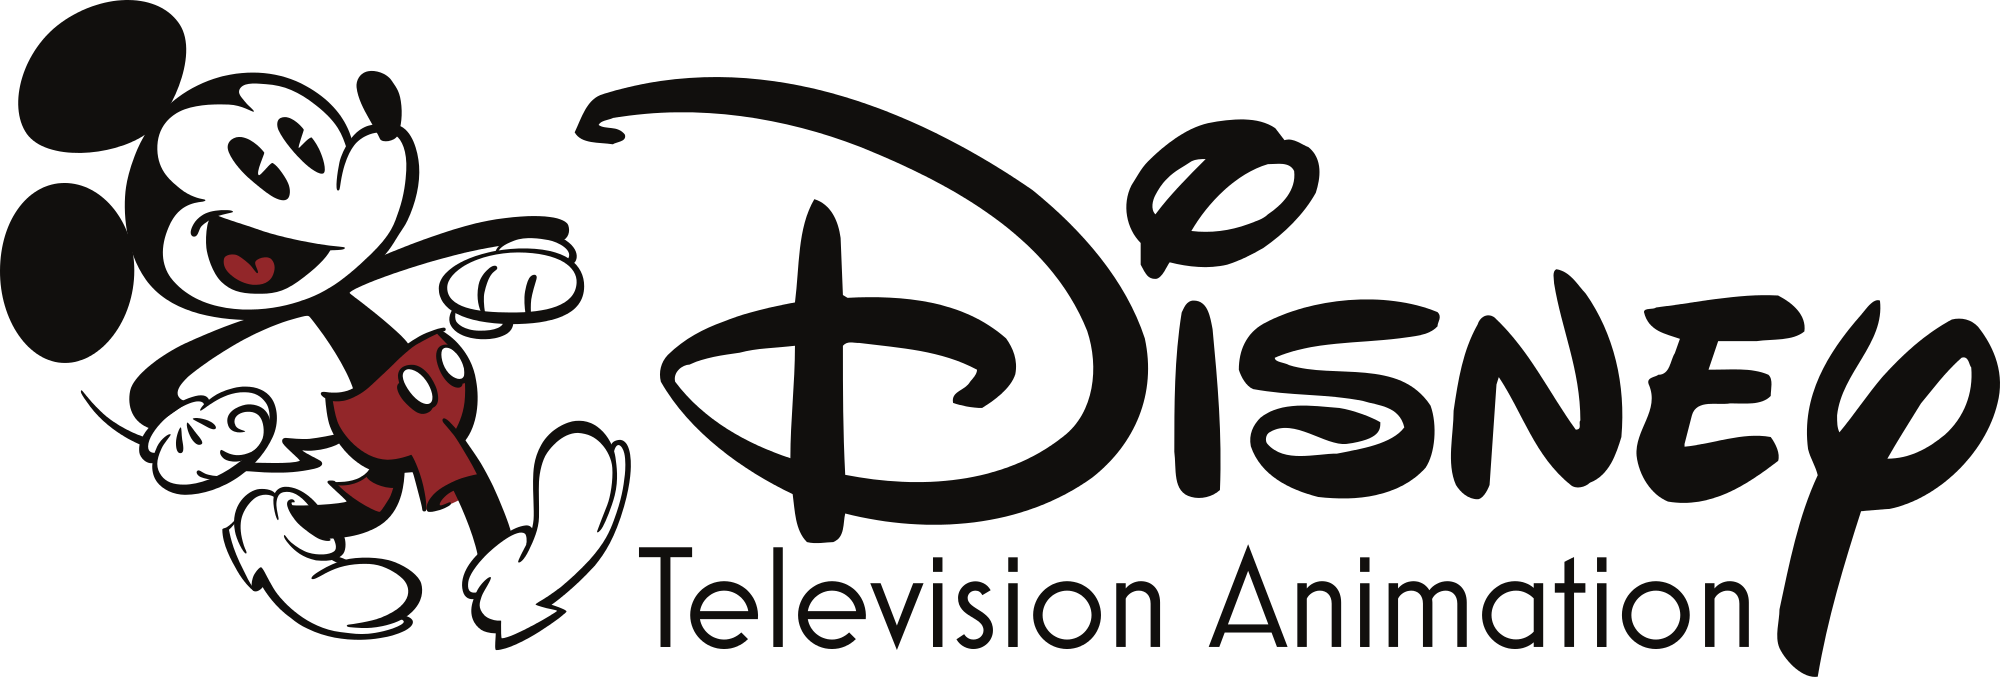 Disney Television Animation Wiki